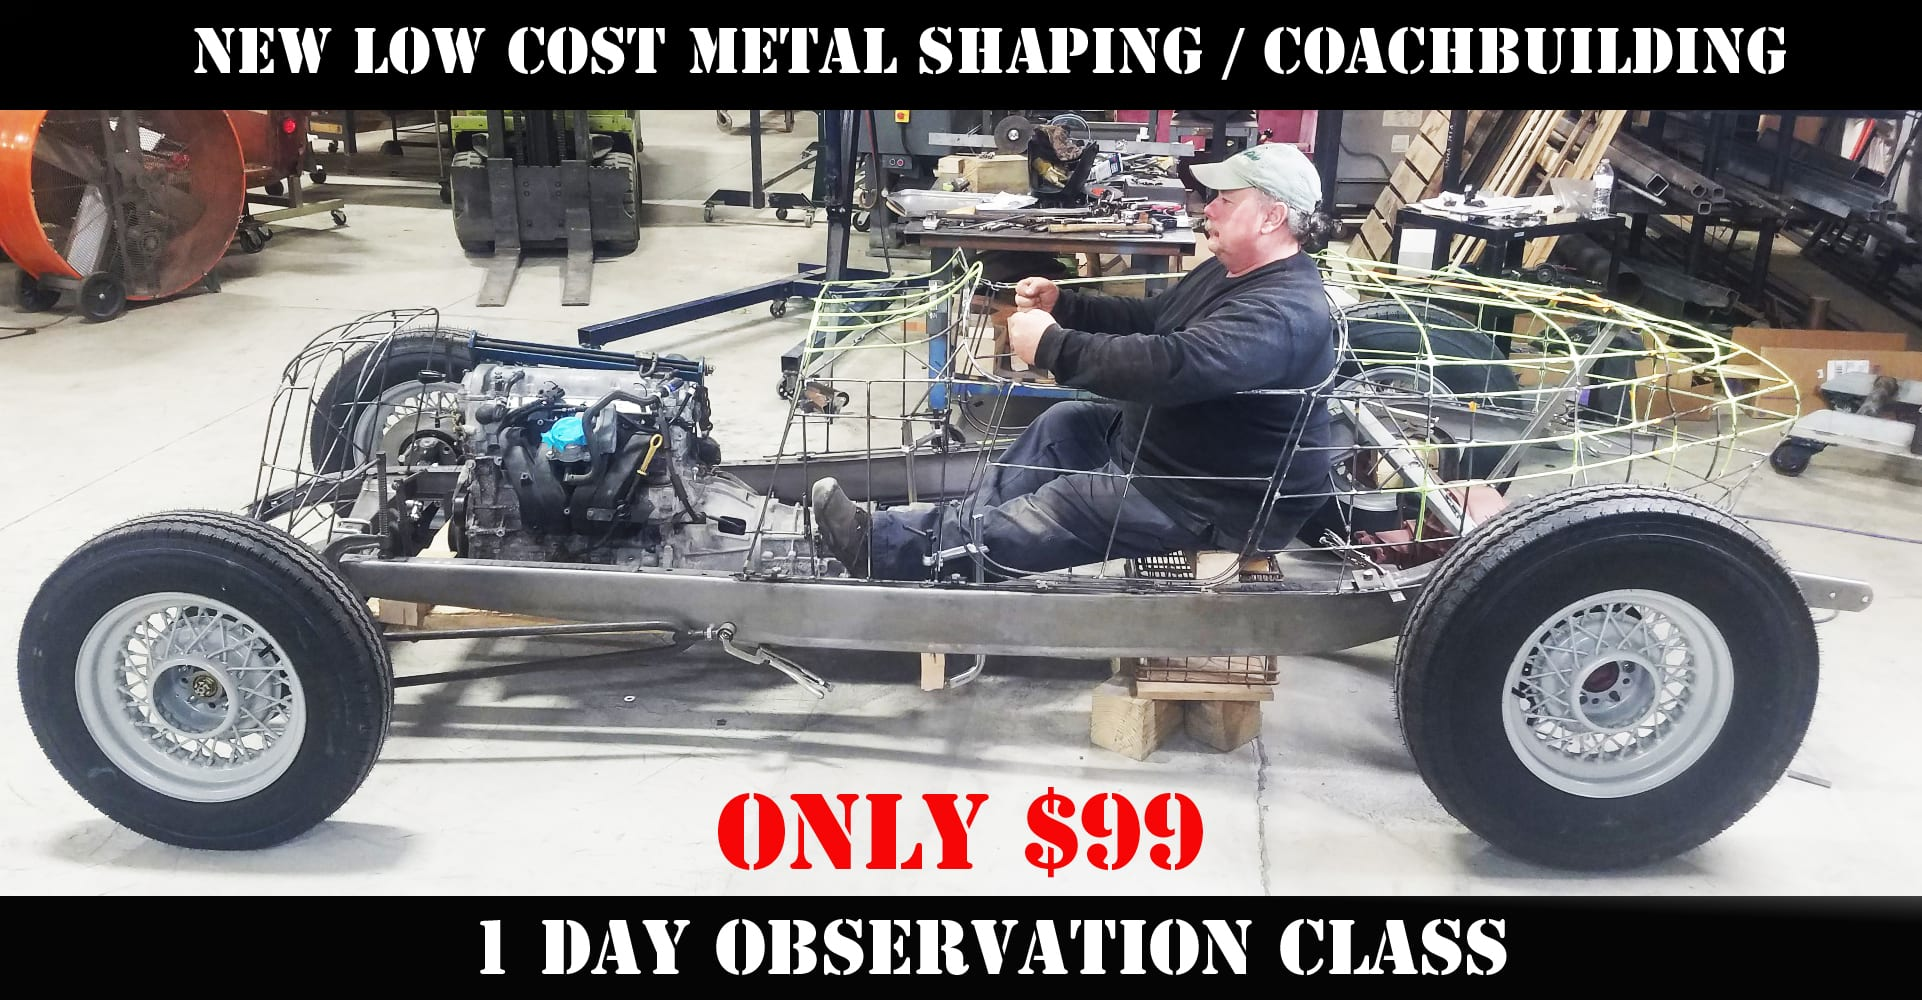 Metalshaping class